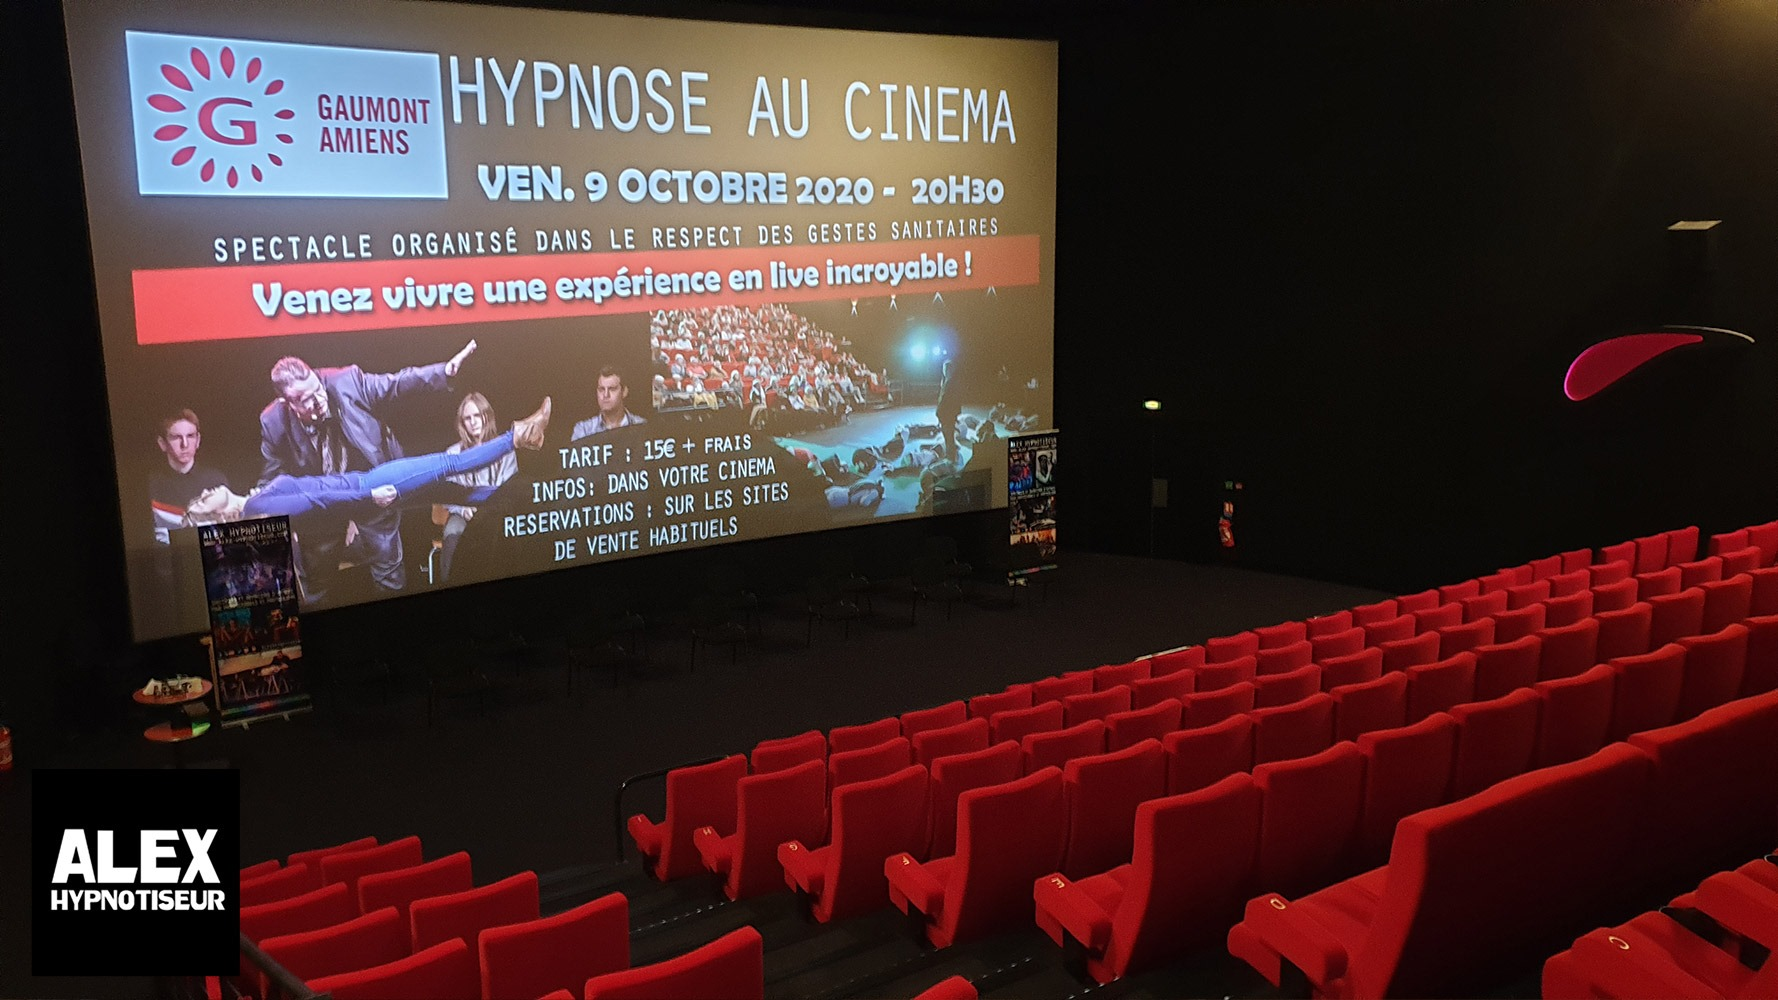 Spectacle Hypnose Amiens